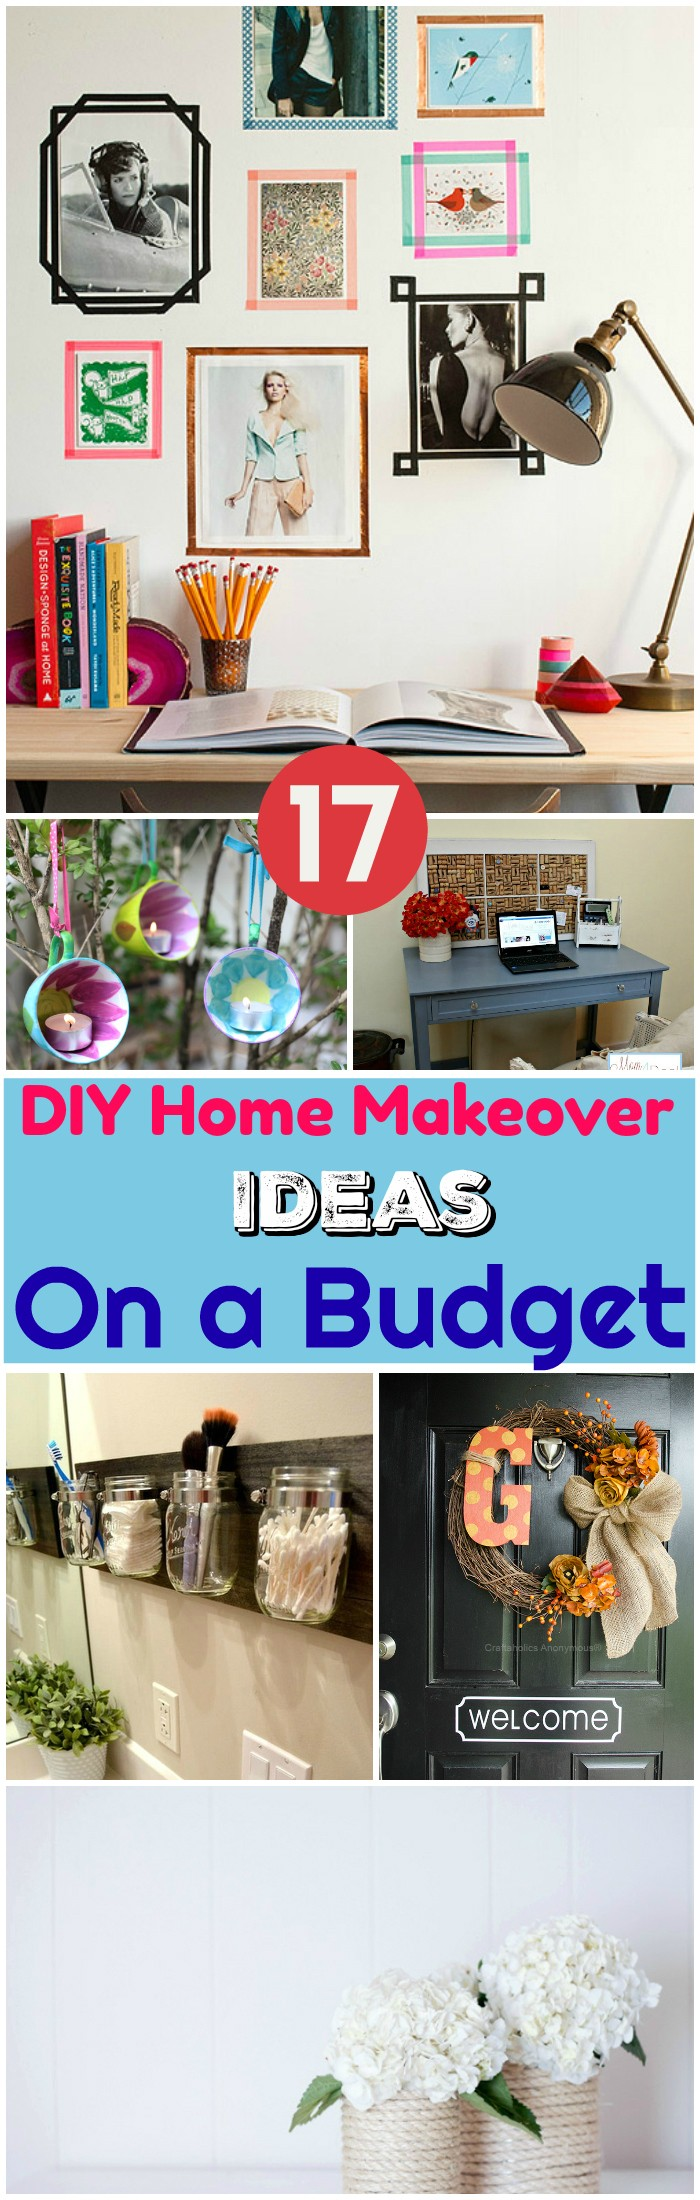 17 Interesting Diy Home Makeover Ideas On A Budget Diy